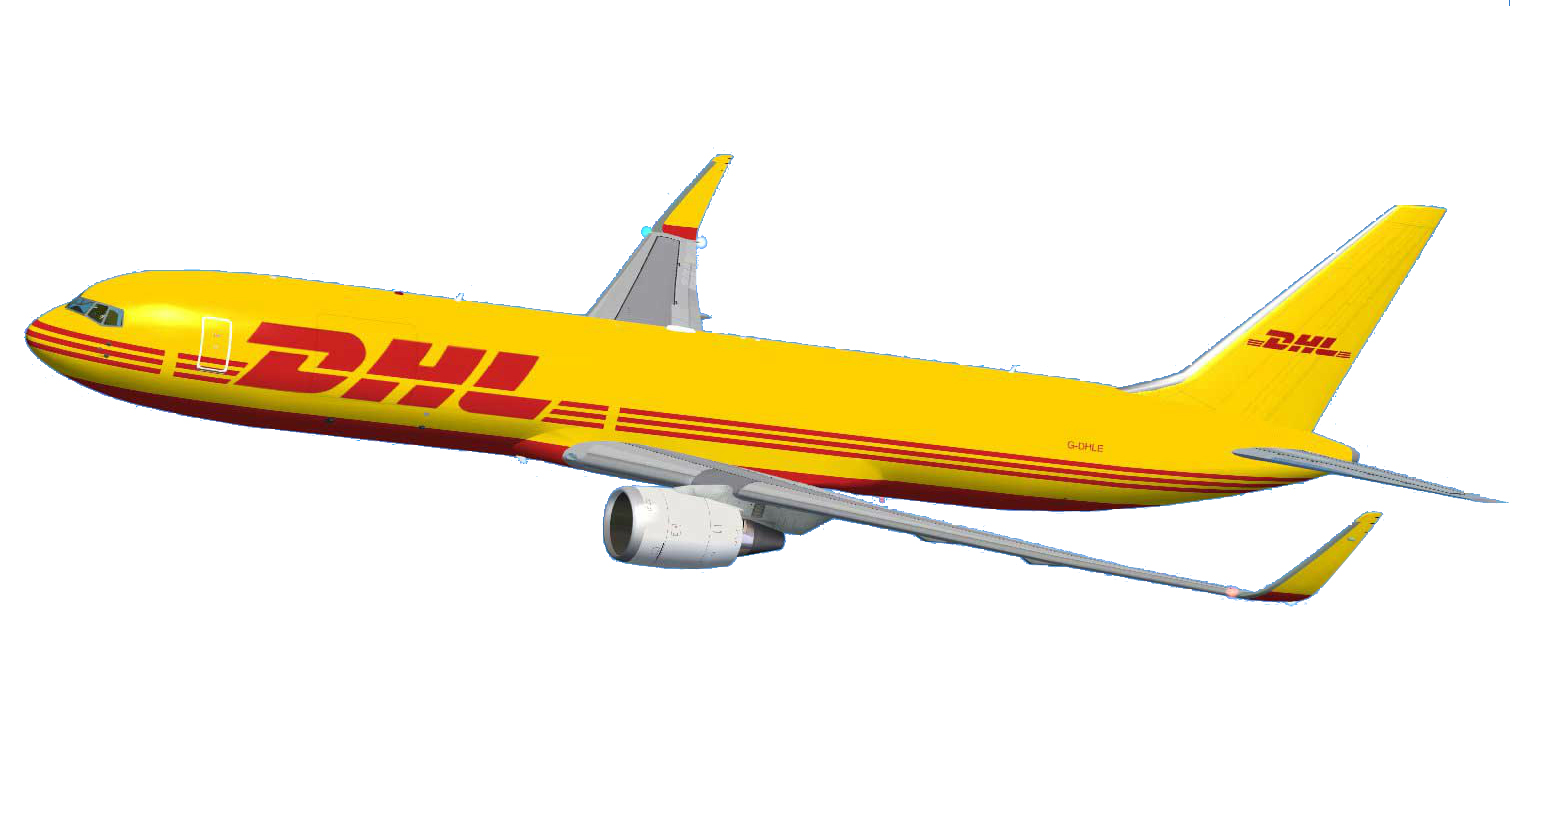 dhl commercial marketing in triad Looking for a creative marketing and design firm to help grow your business brown creative group specializes in getting your business found online.